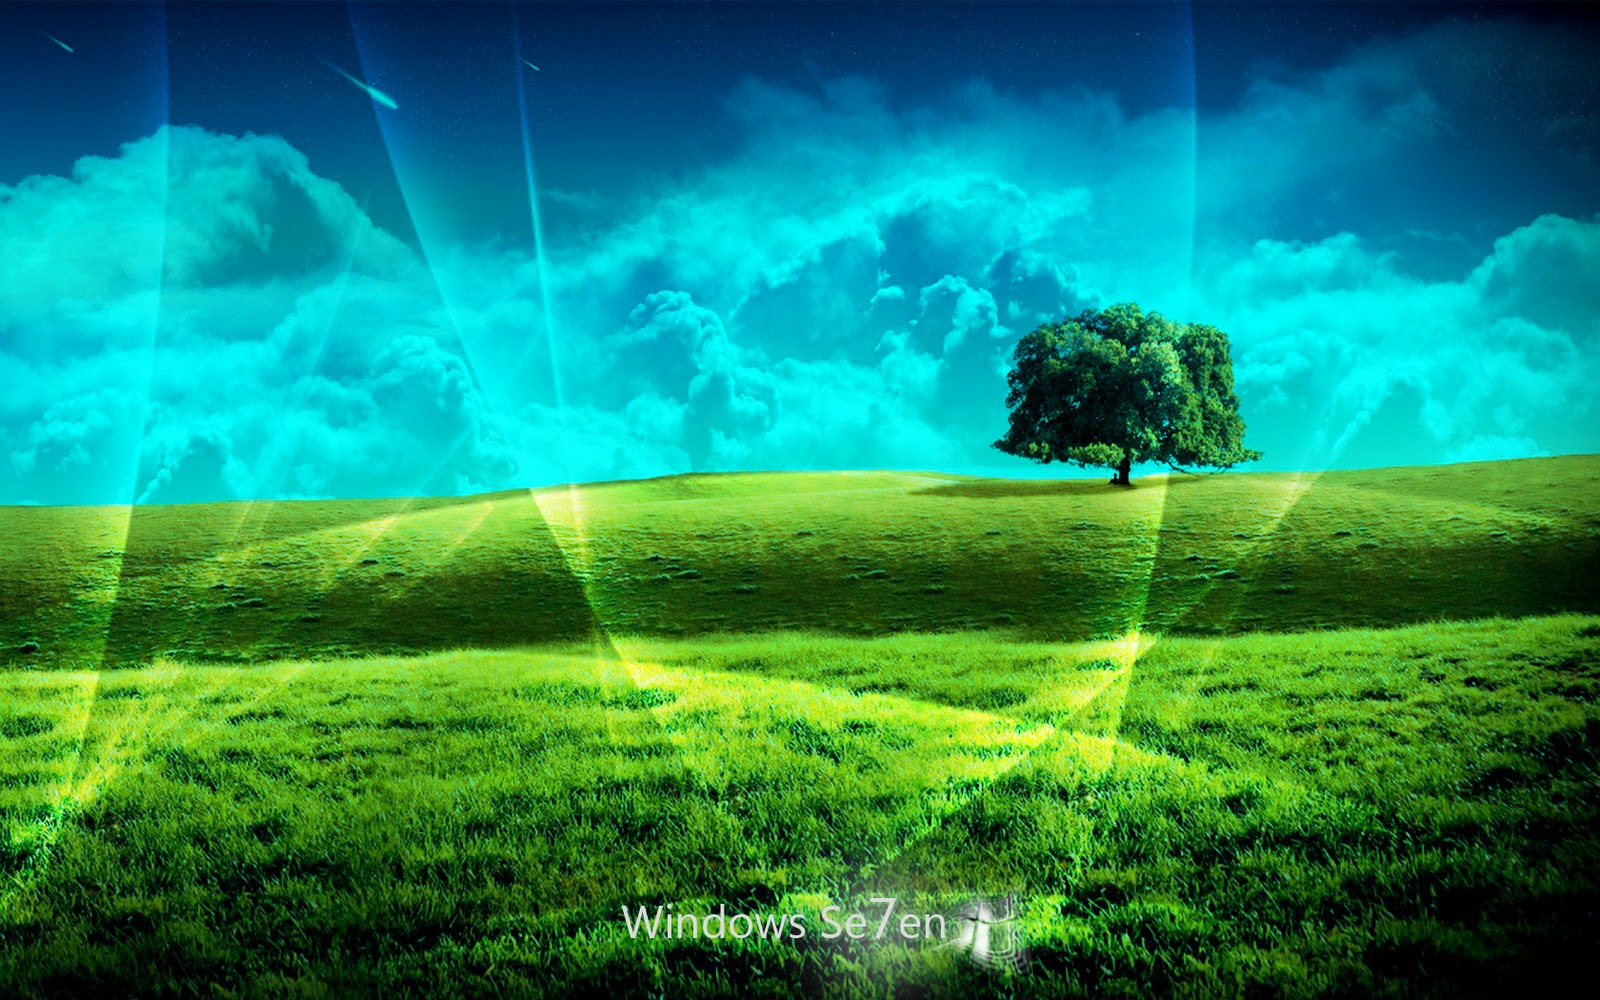 windows 7 wallpaper with hd for desktop backgrounds 1600x1000